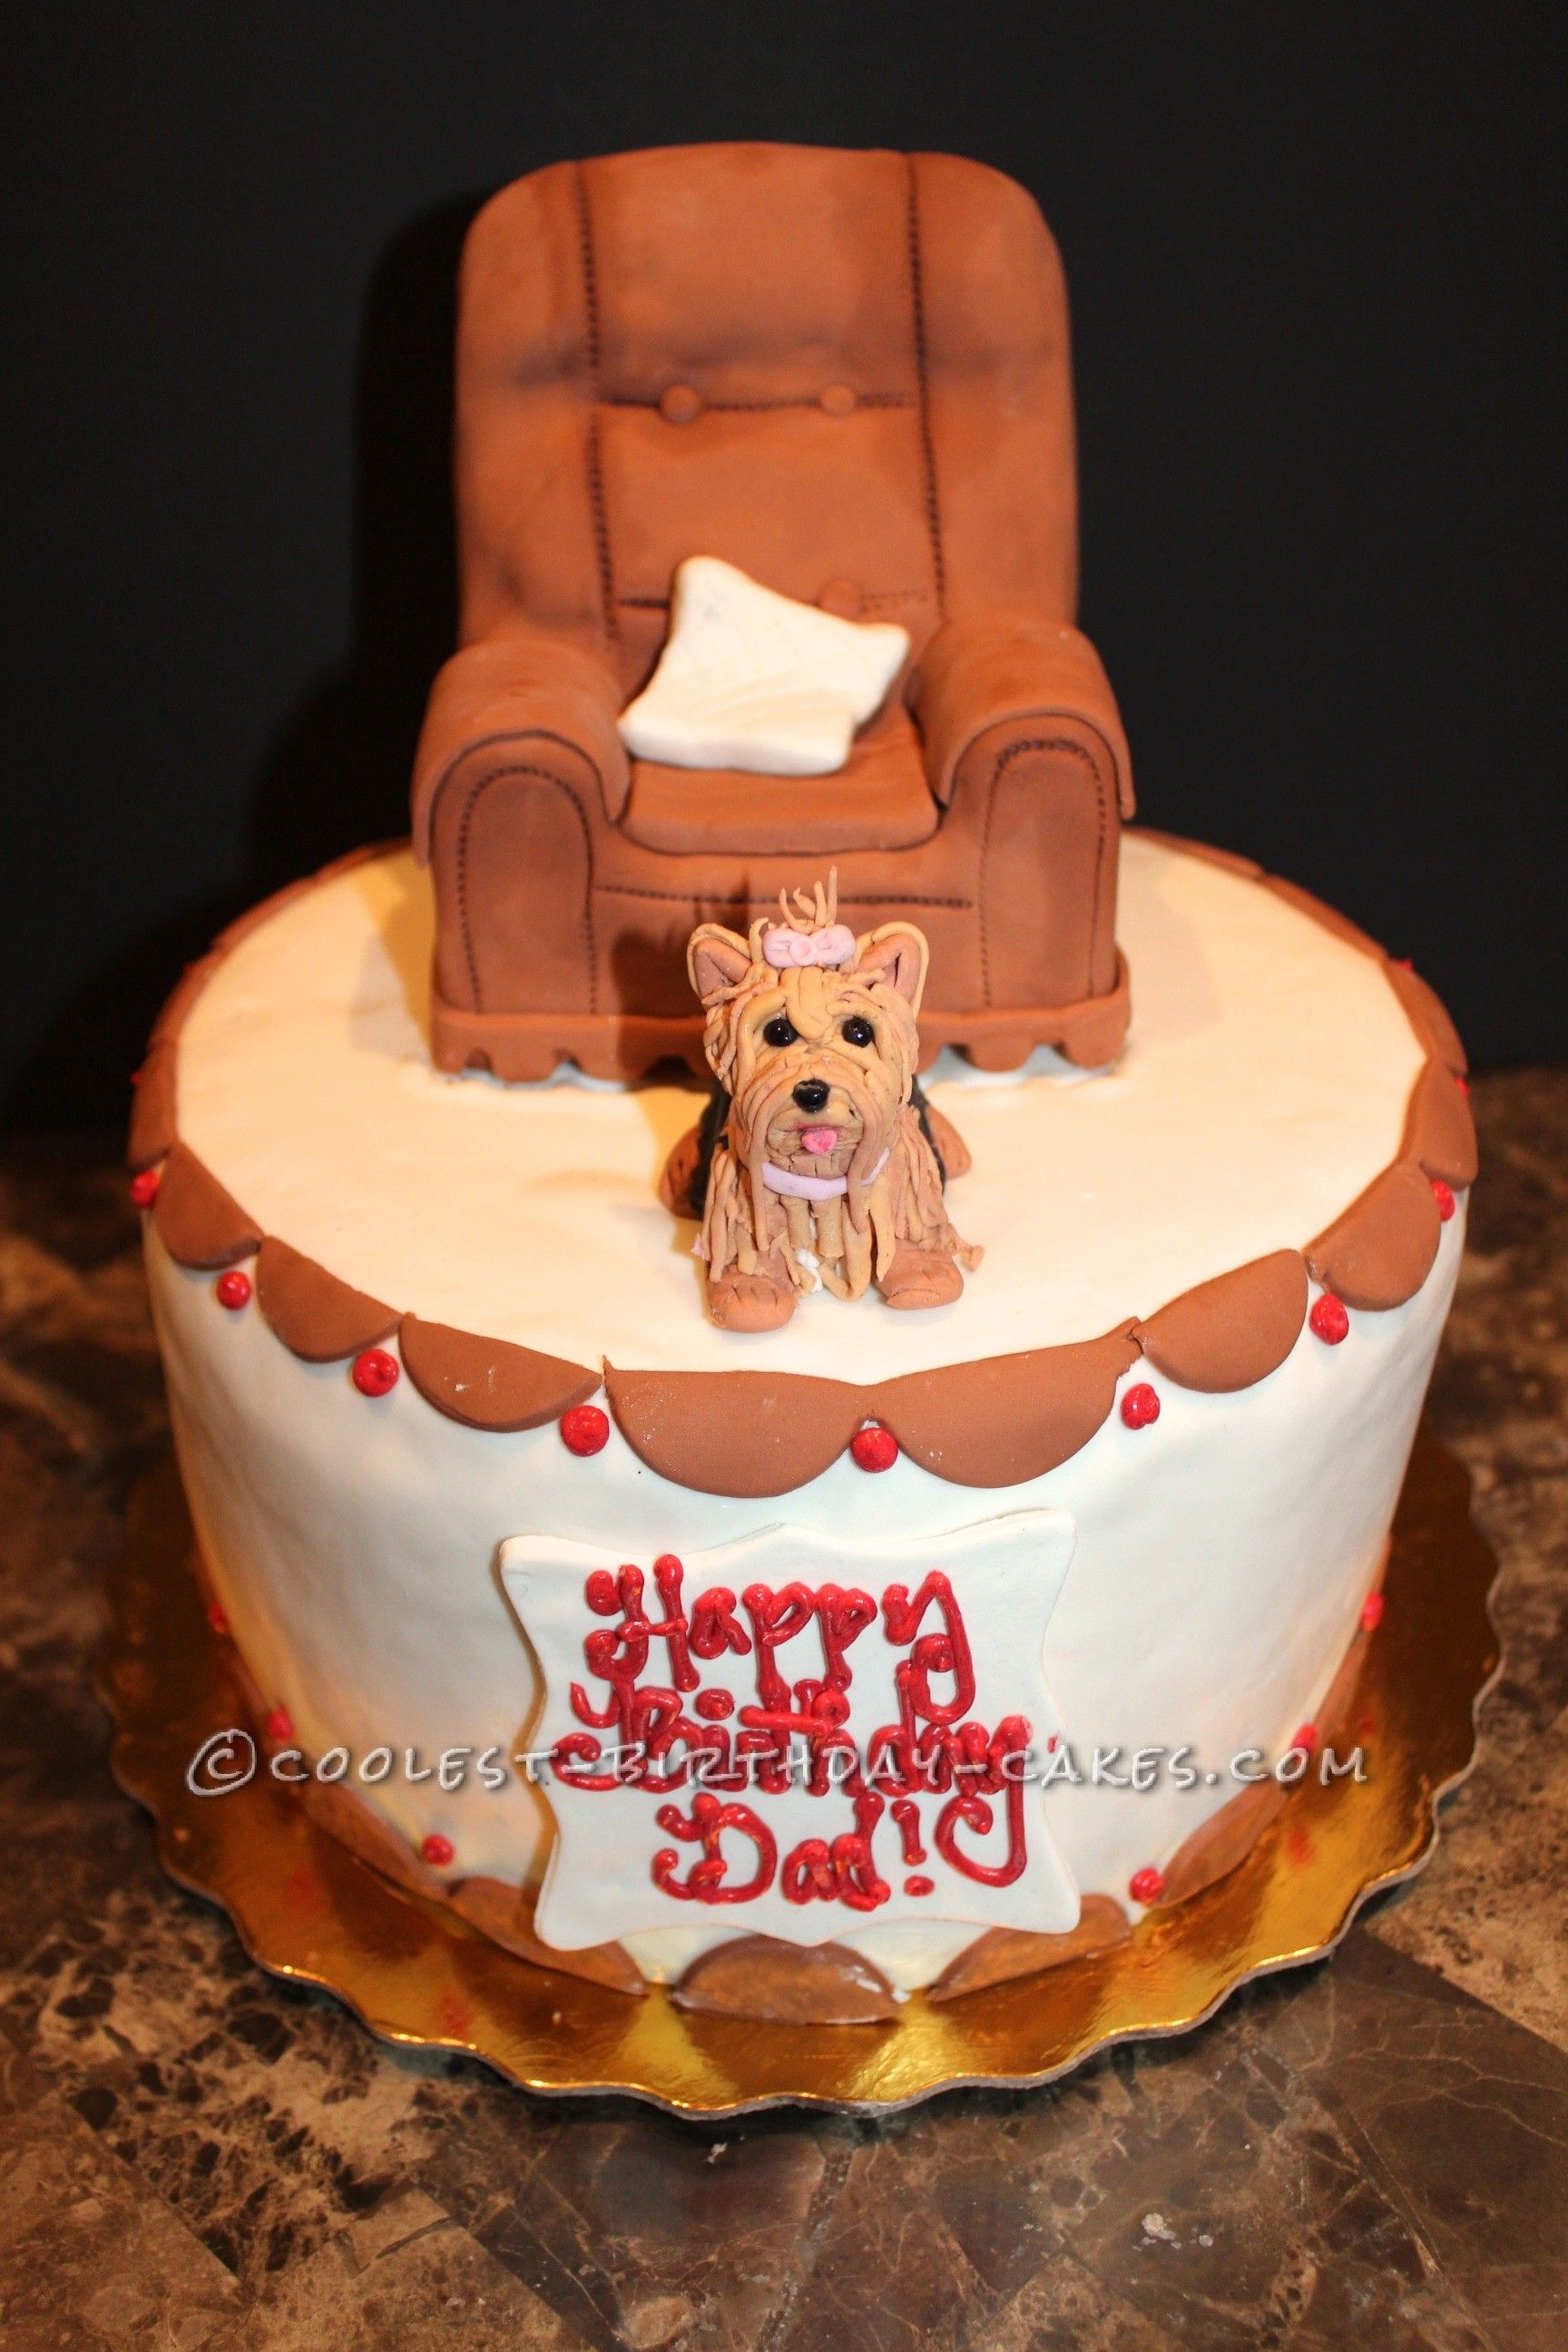 Awesome Dads Yorkie Birthday Cake This Website Is The Pinterest Of Ideas